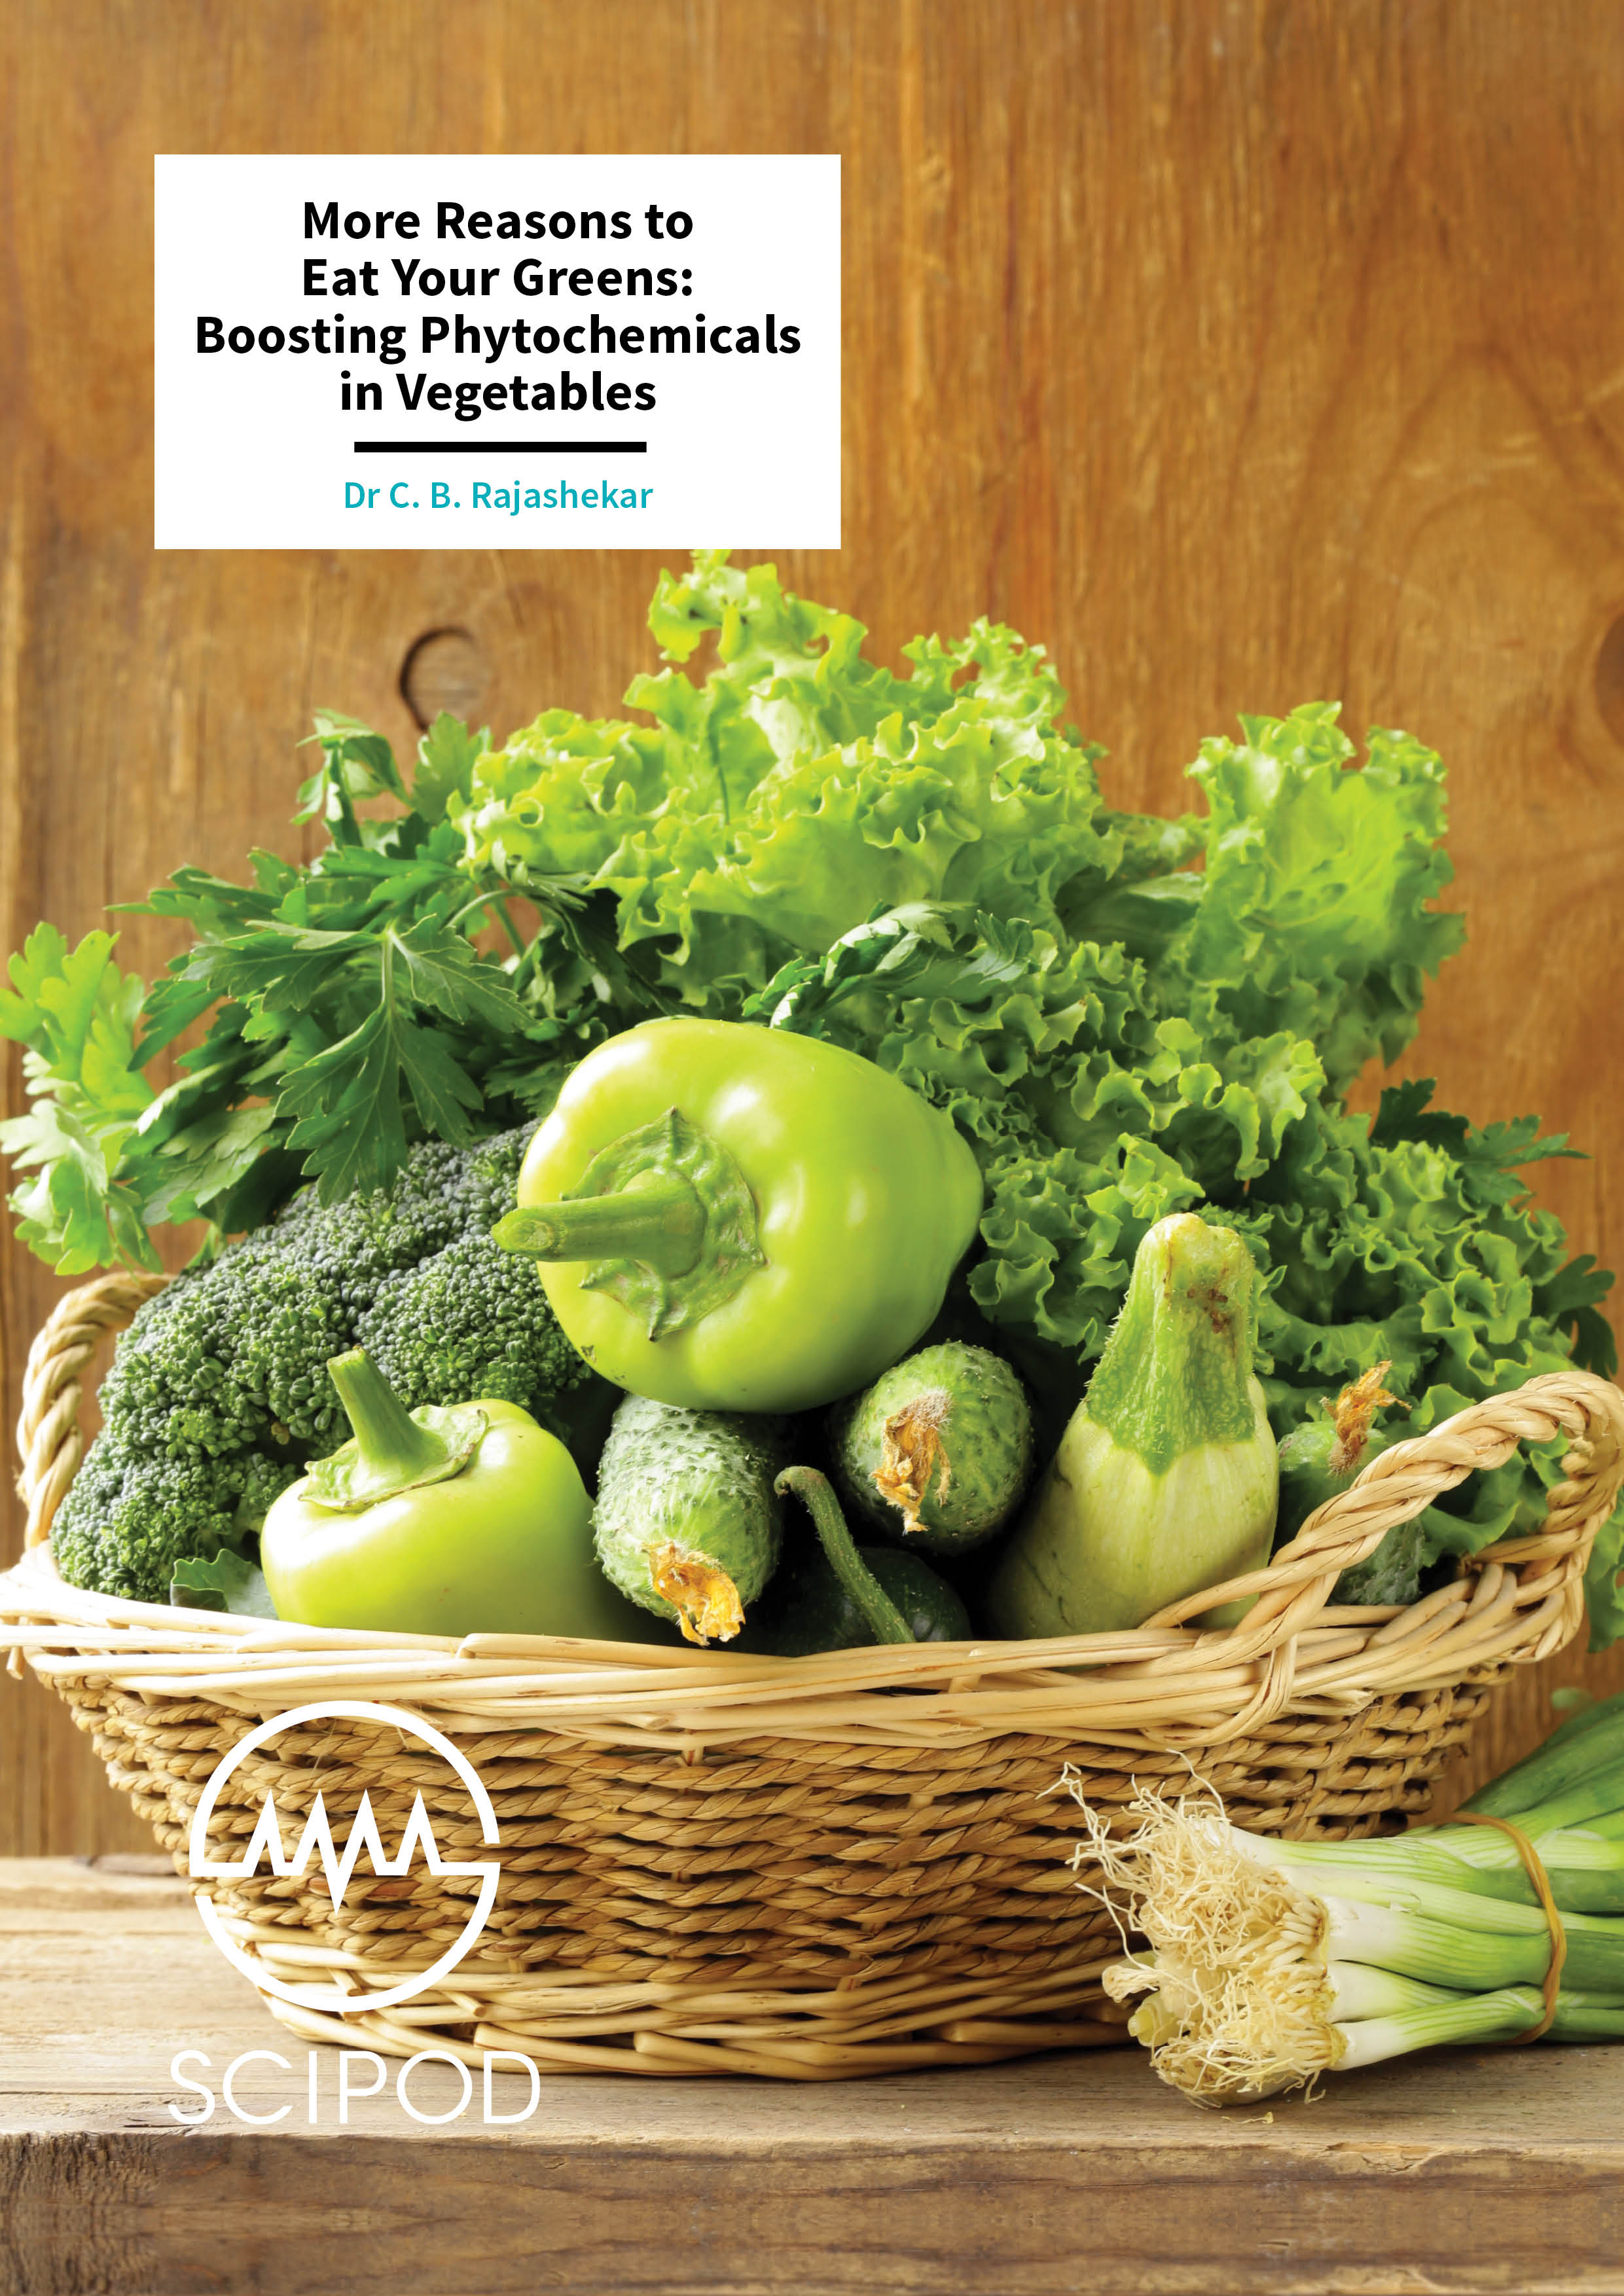 More Reasons to Eat Your Greens Boosting Phytochemicals in Vegetables – Dr C. B. Rajashekar, Kansas State University